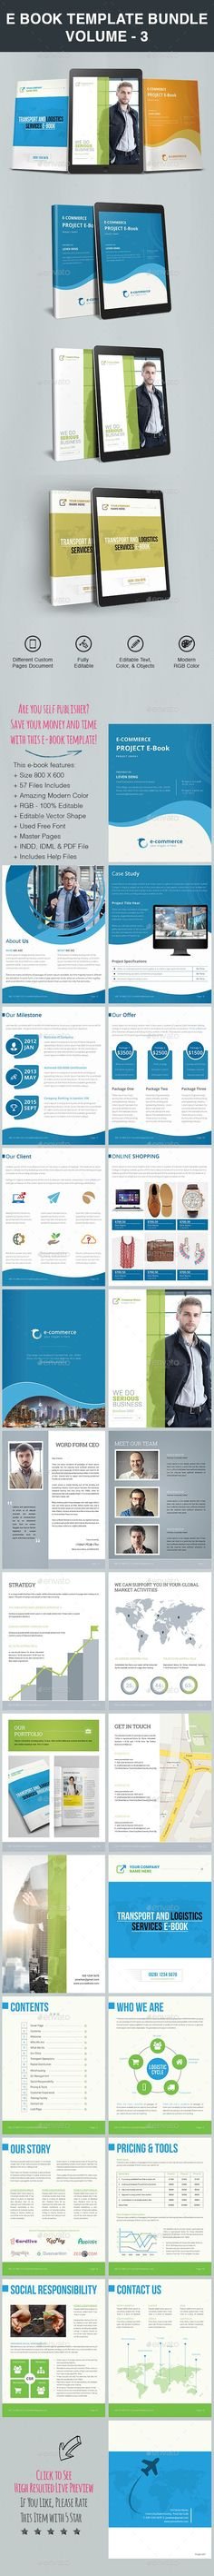 620 Best e-Publishing Templates images in 2019 | Booklet